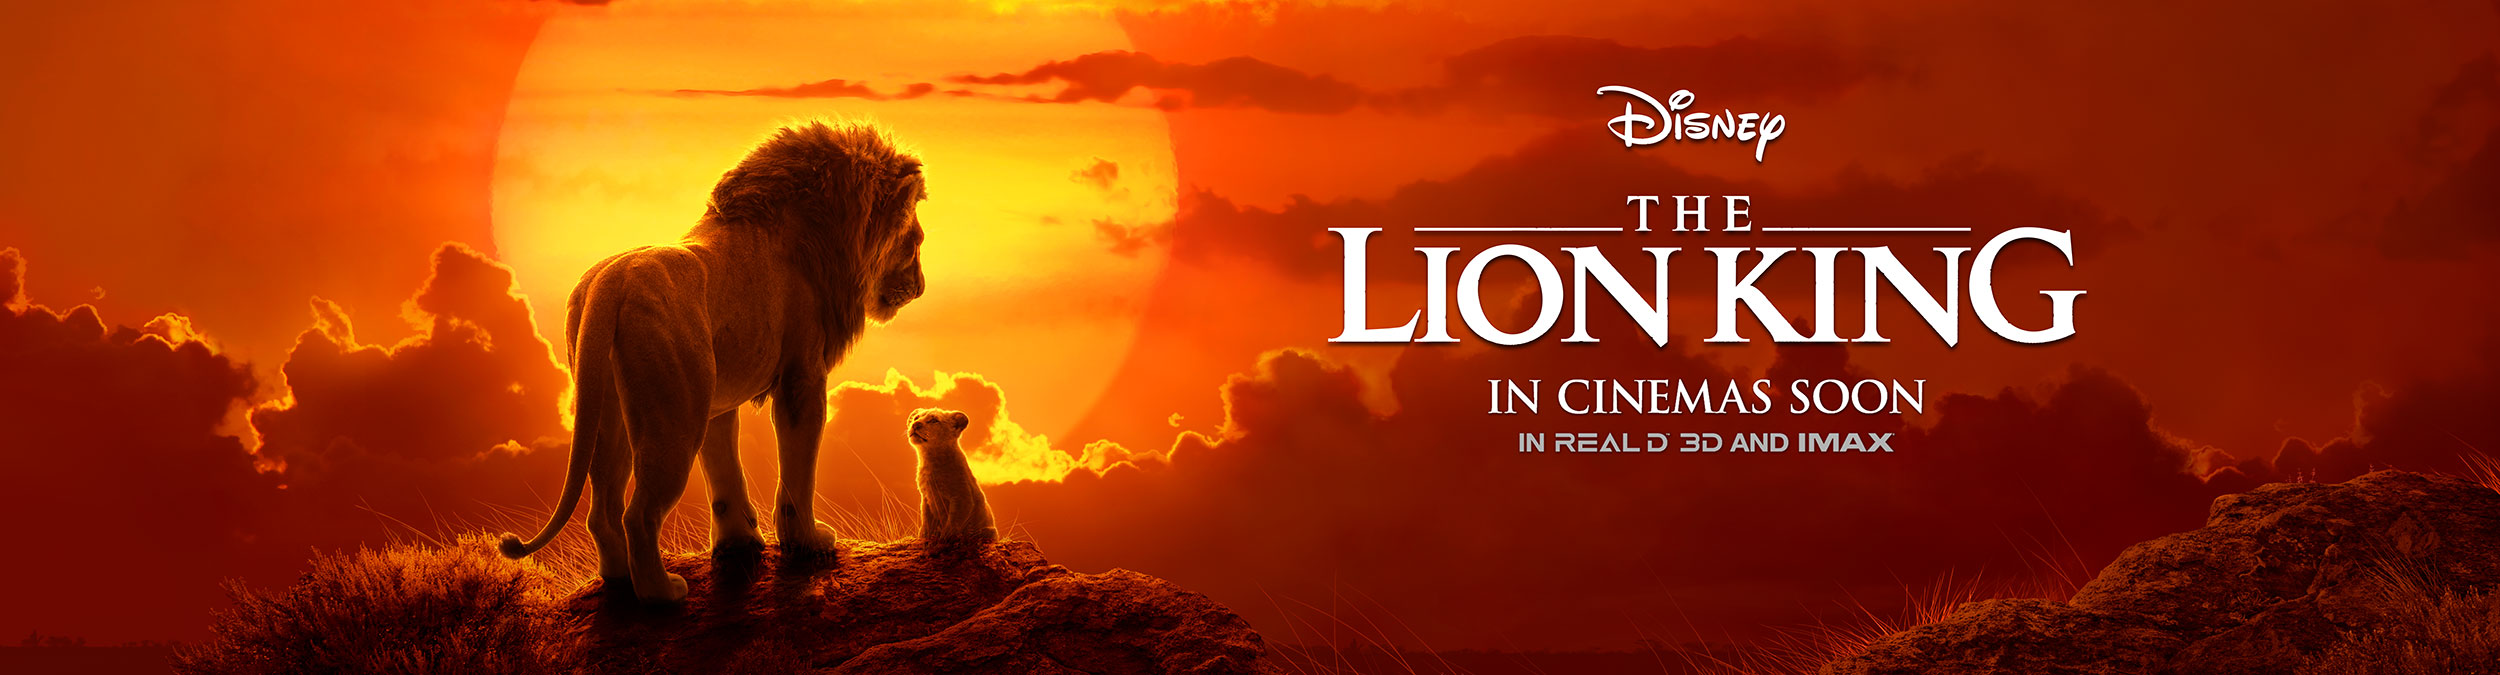 THE LION KING | INTL. PREMIERE WALL FINISHING & ILLUSTRATION